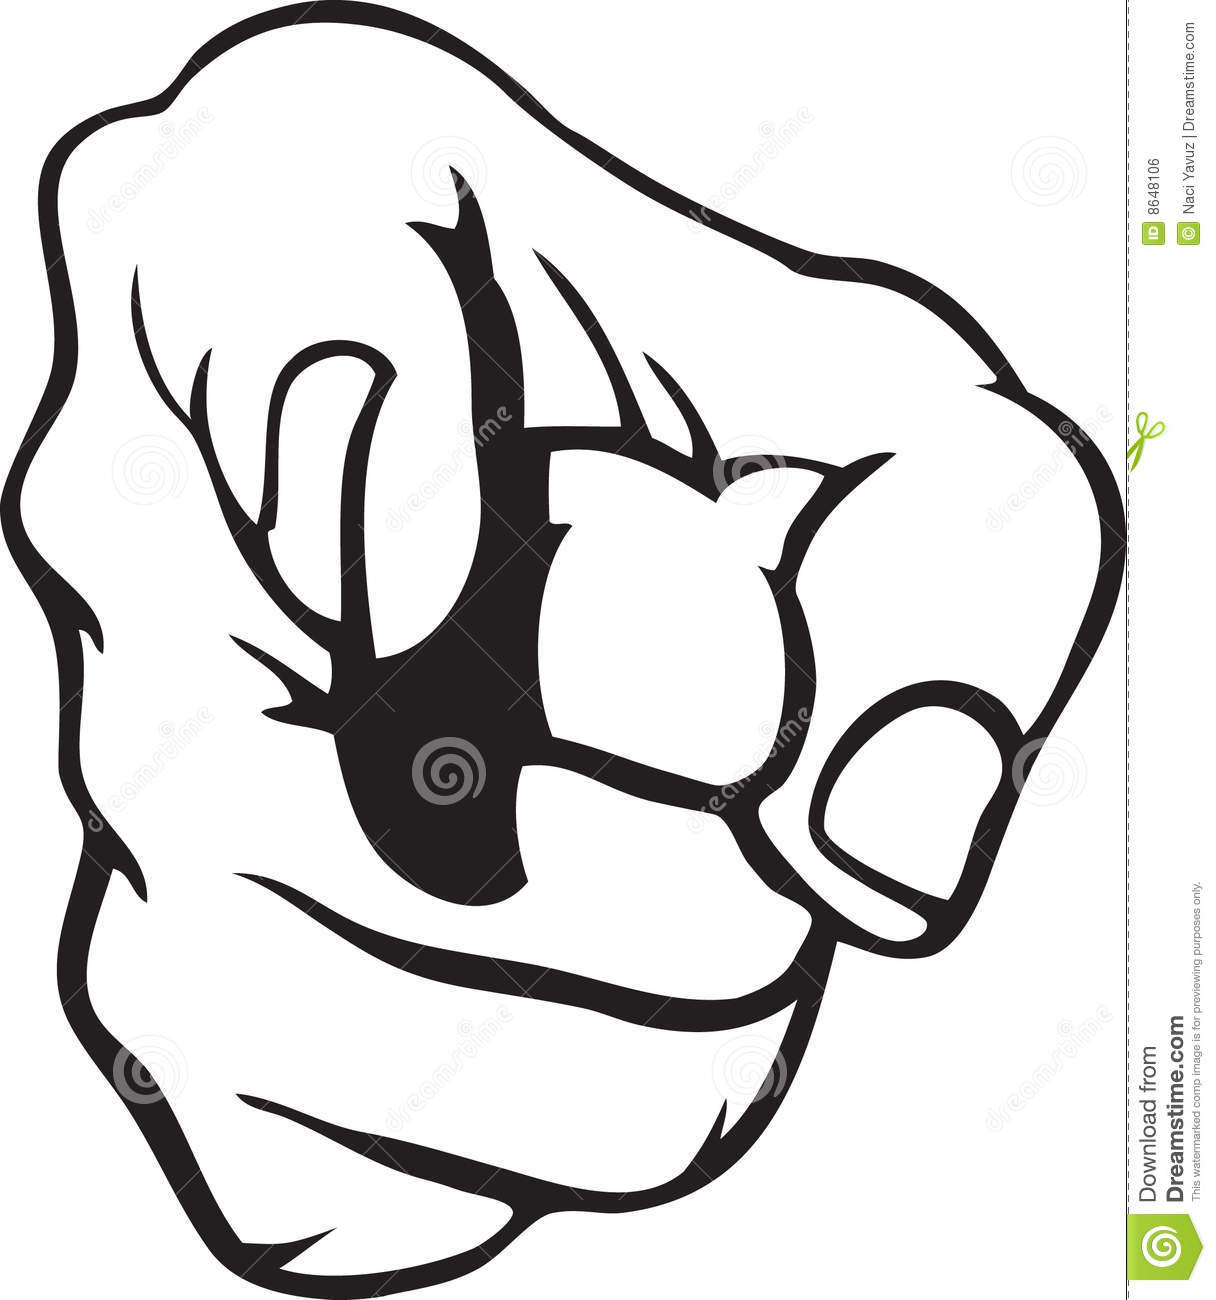 Hand Pointing Stock Vector Illustration Of Fight